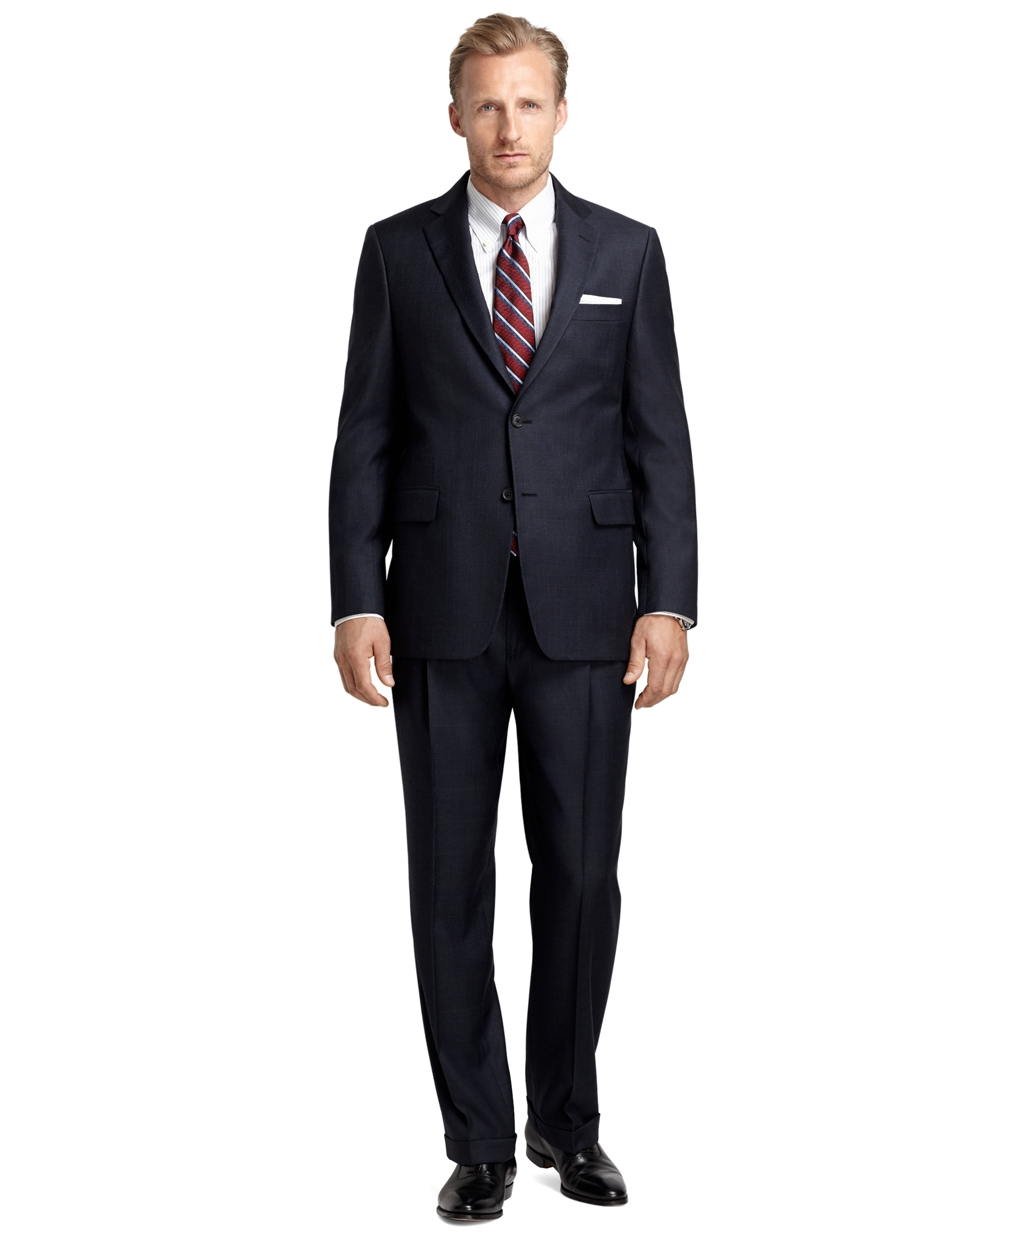 Relativity And Buying A Man's Suit - High Quality Suits ...